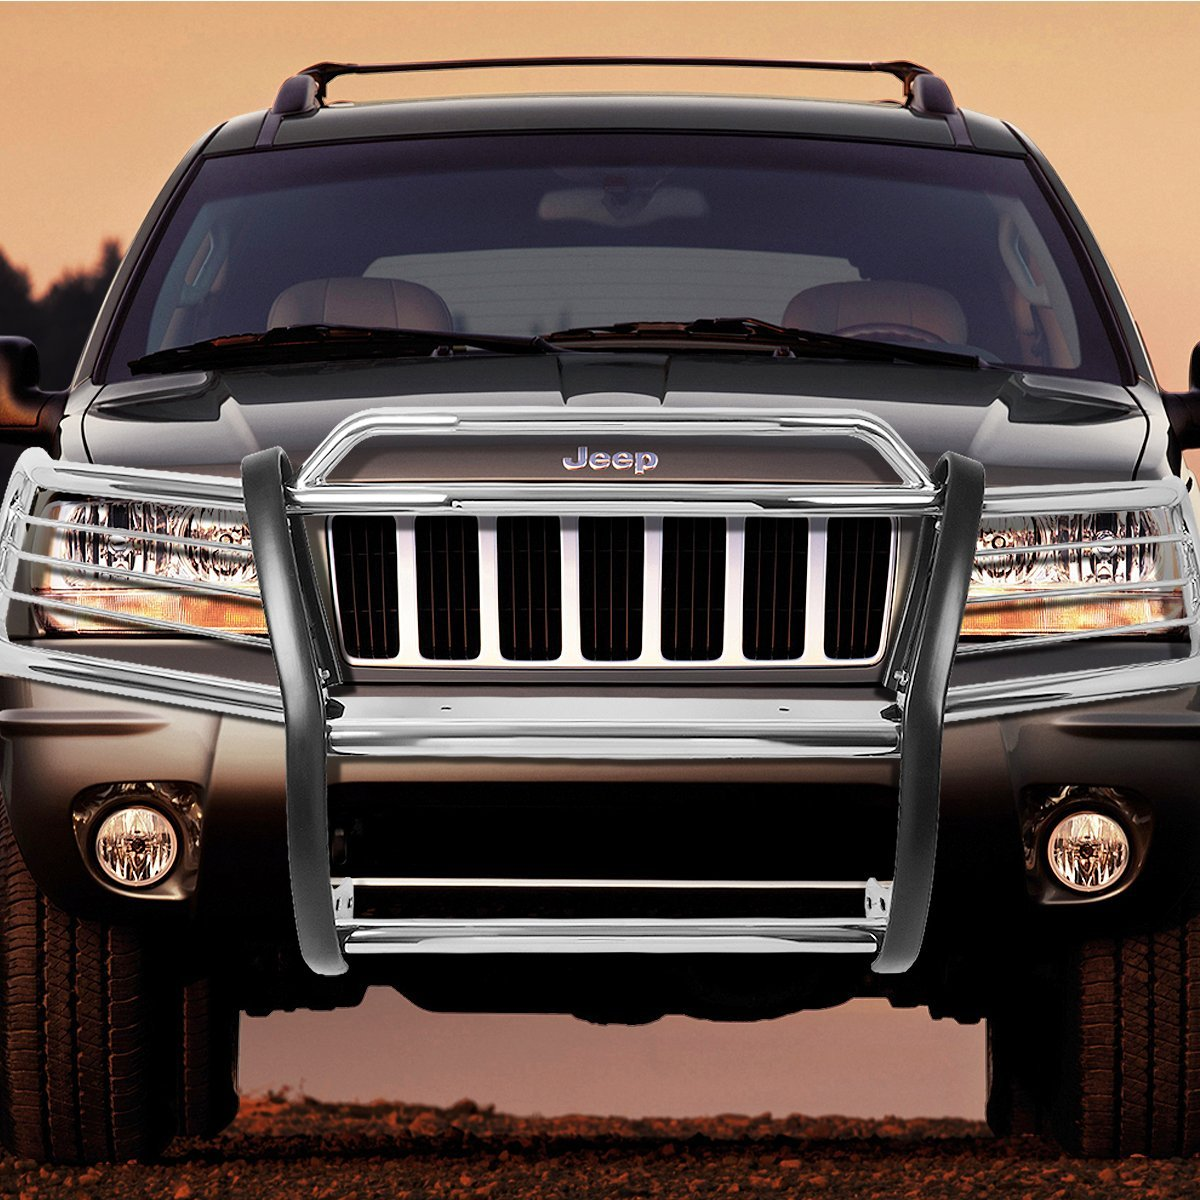 99 04 jeep grand cherokee wj front bumper protector brush. Black Bedroom Furniture Sets. Home Design Ideas